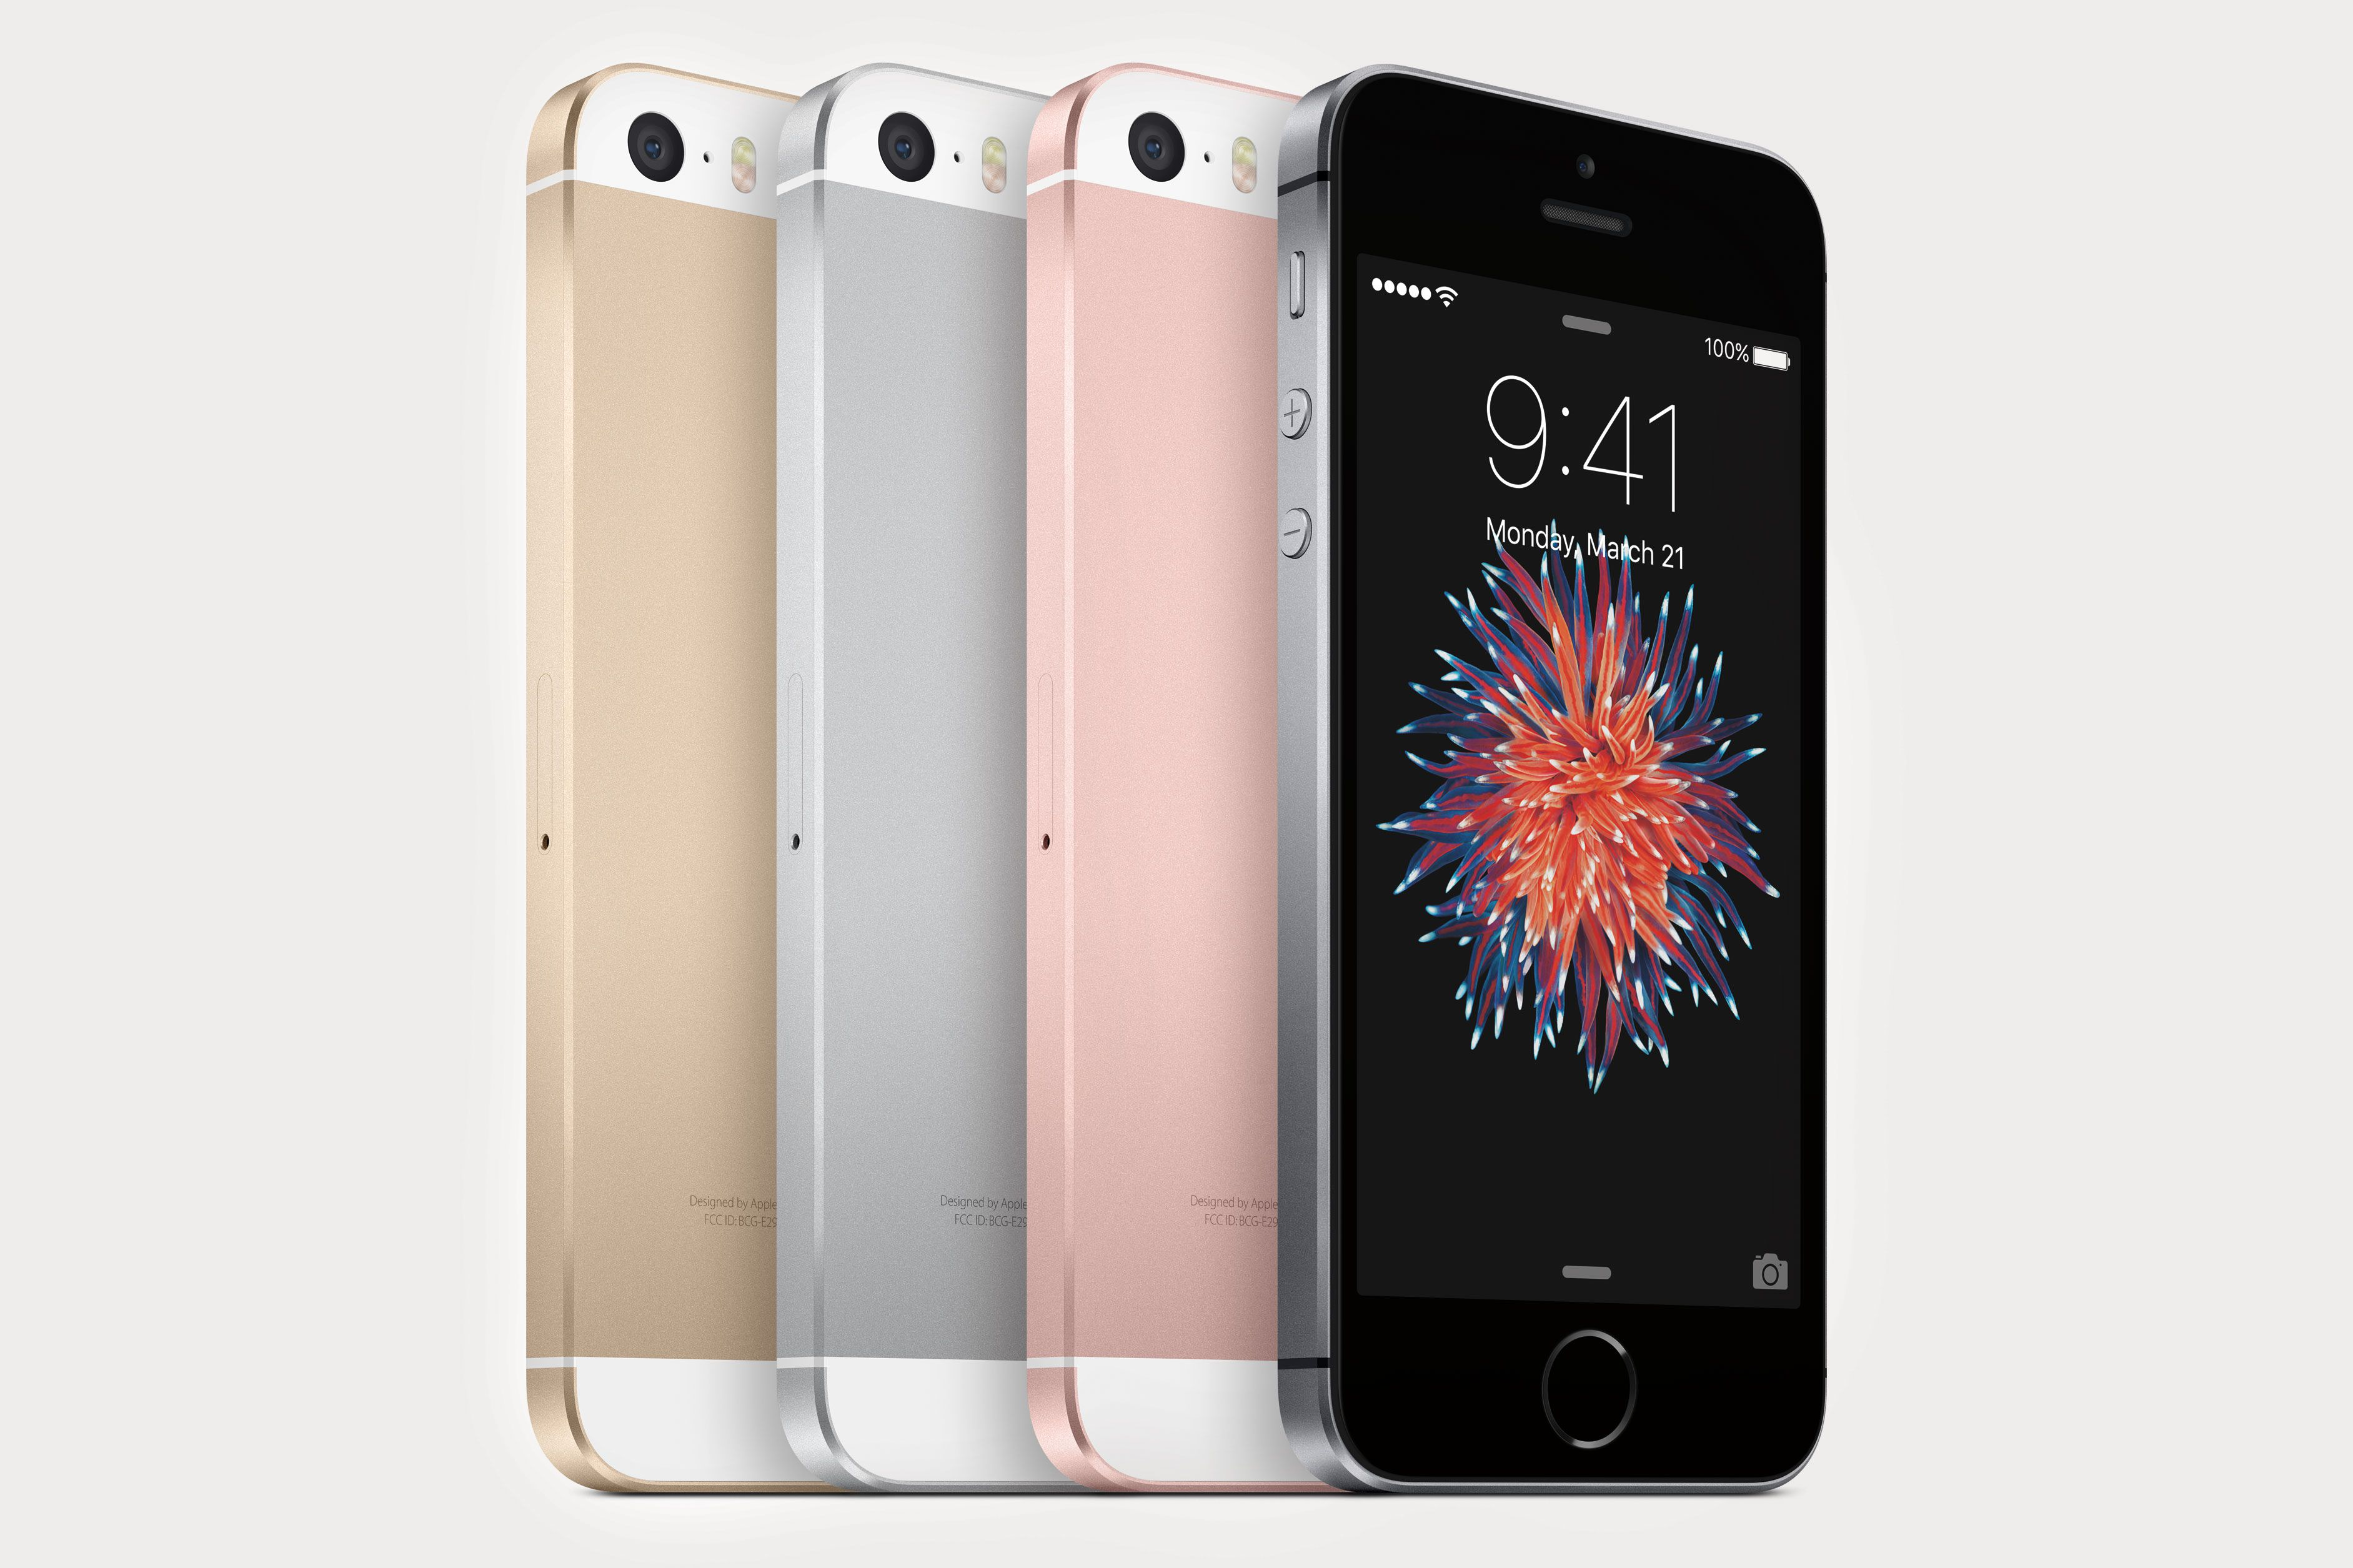 Download iphone user guides for every model back to the future 45 stars for the iphone se baditri Choice Image